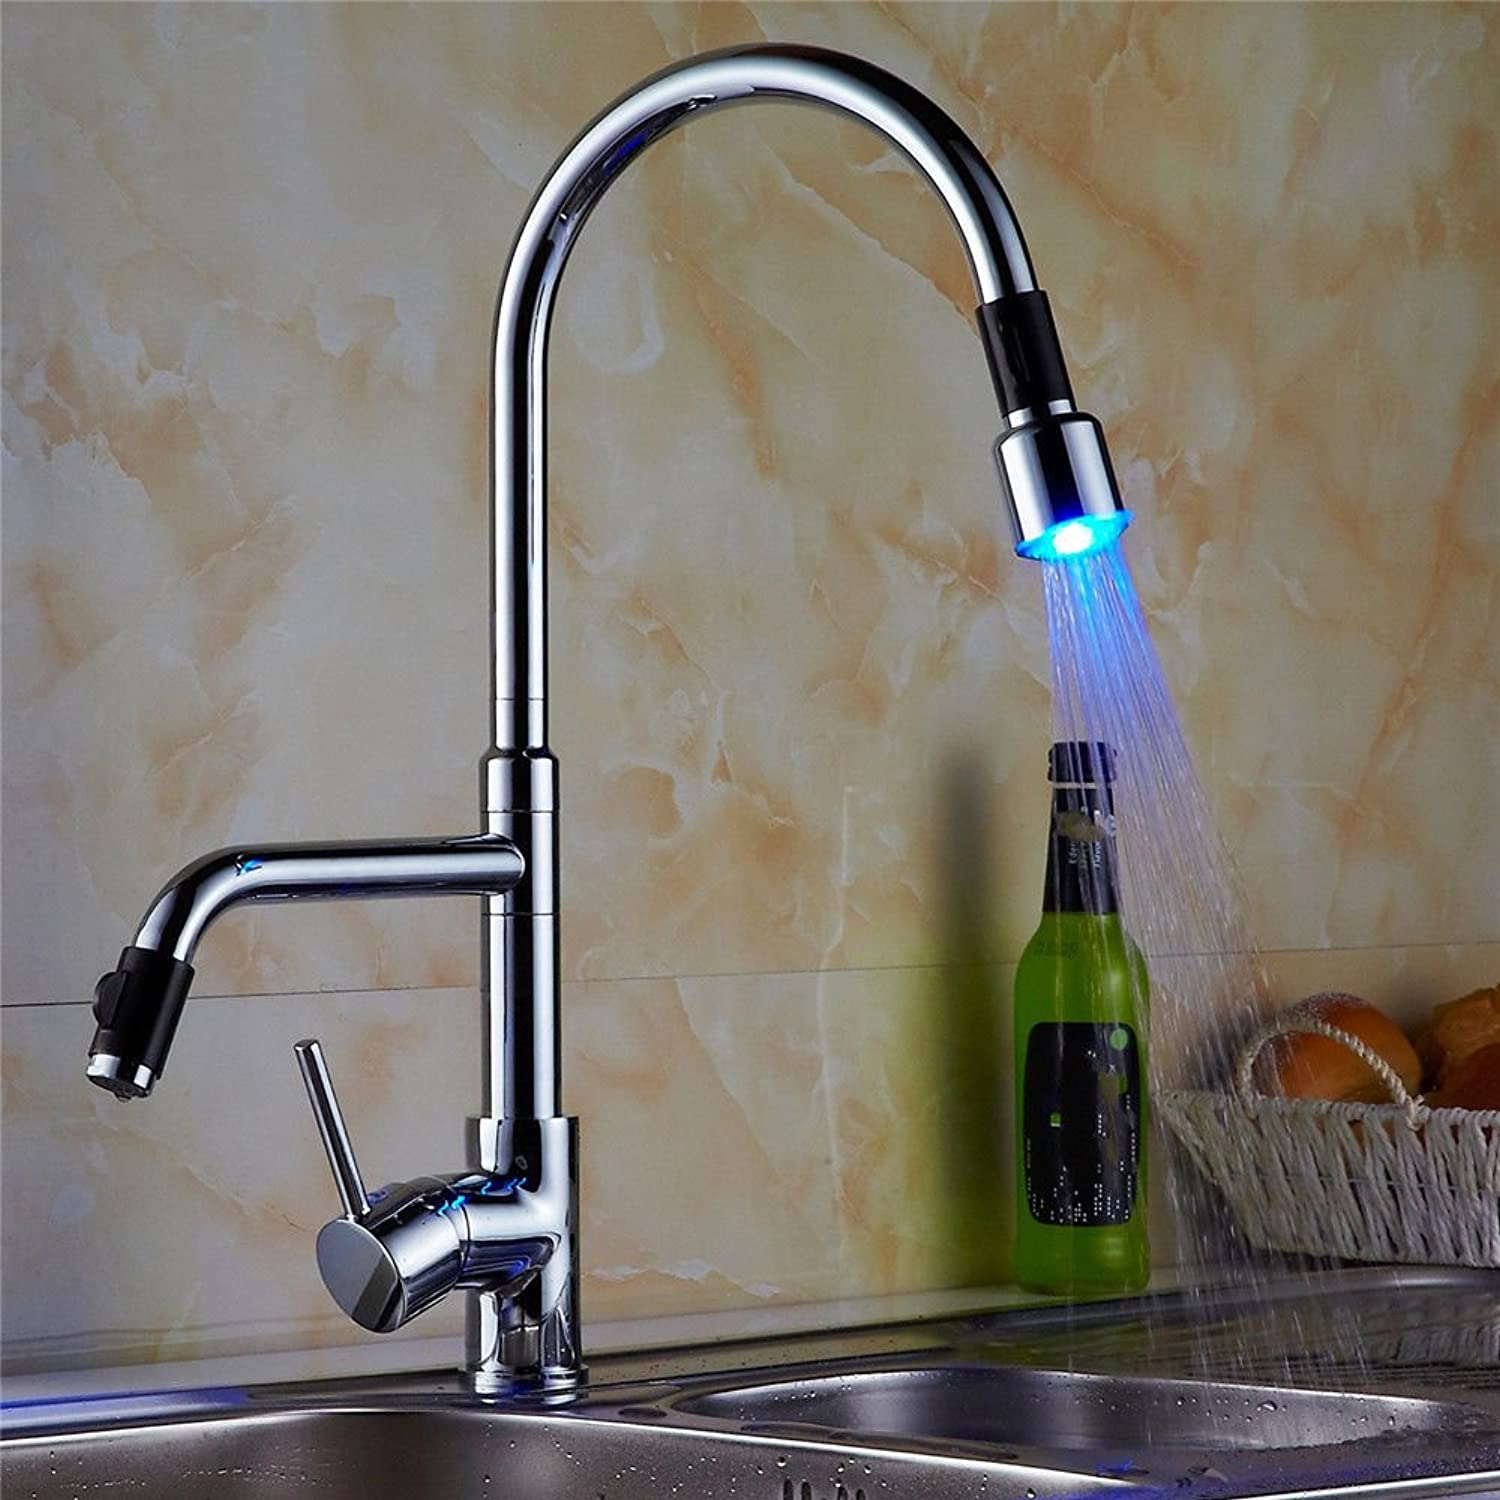 Modern simple copper hot and cold kitchen sink taps kitchen faucet Kitchen faucet full copper chrome sink faucet LED 360 degree redating kitchen faucet Suitable for all bathroom kitchen sinks